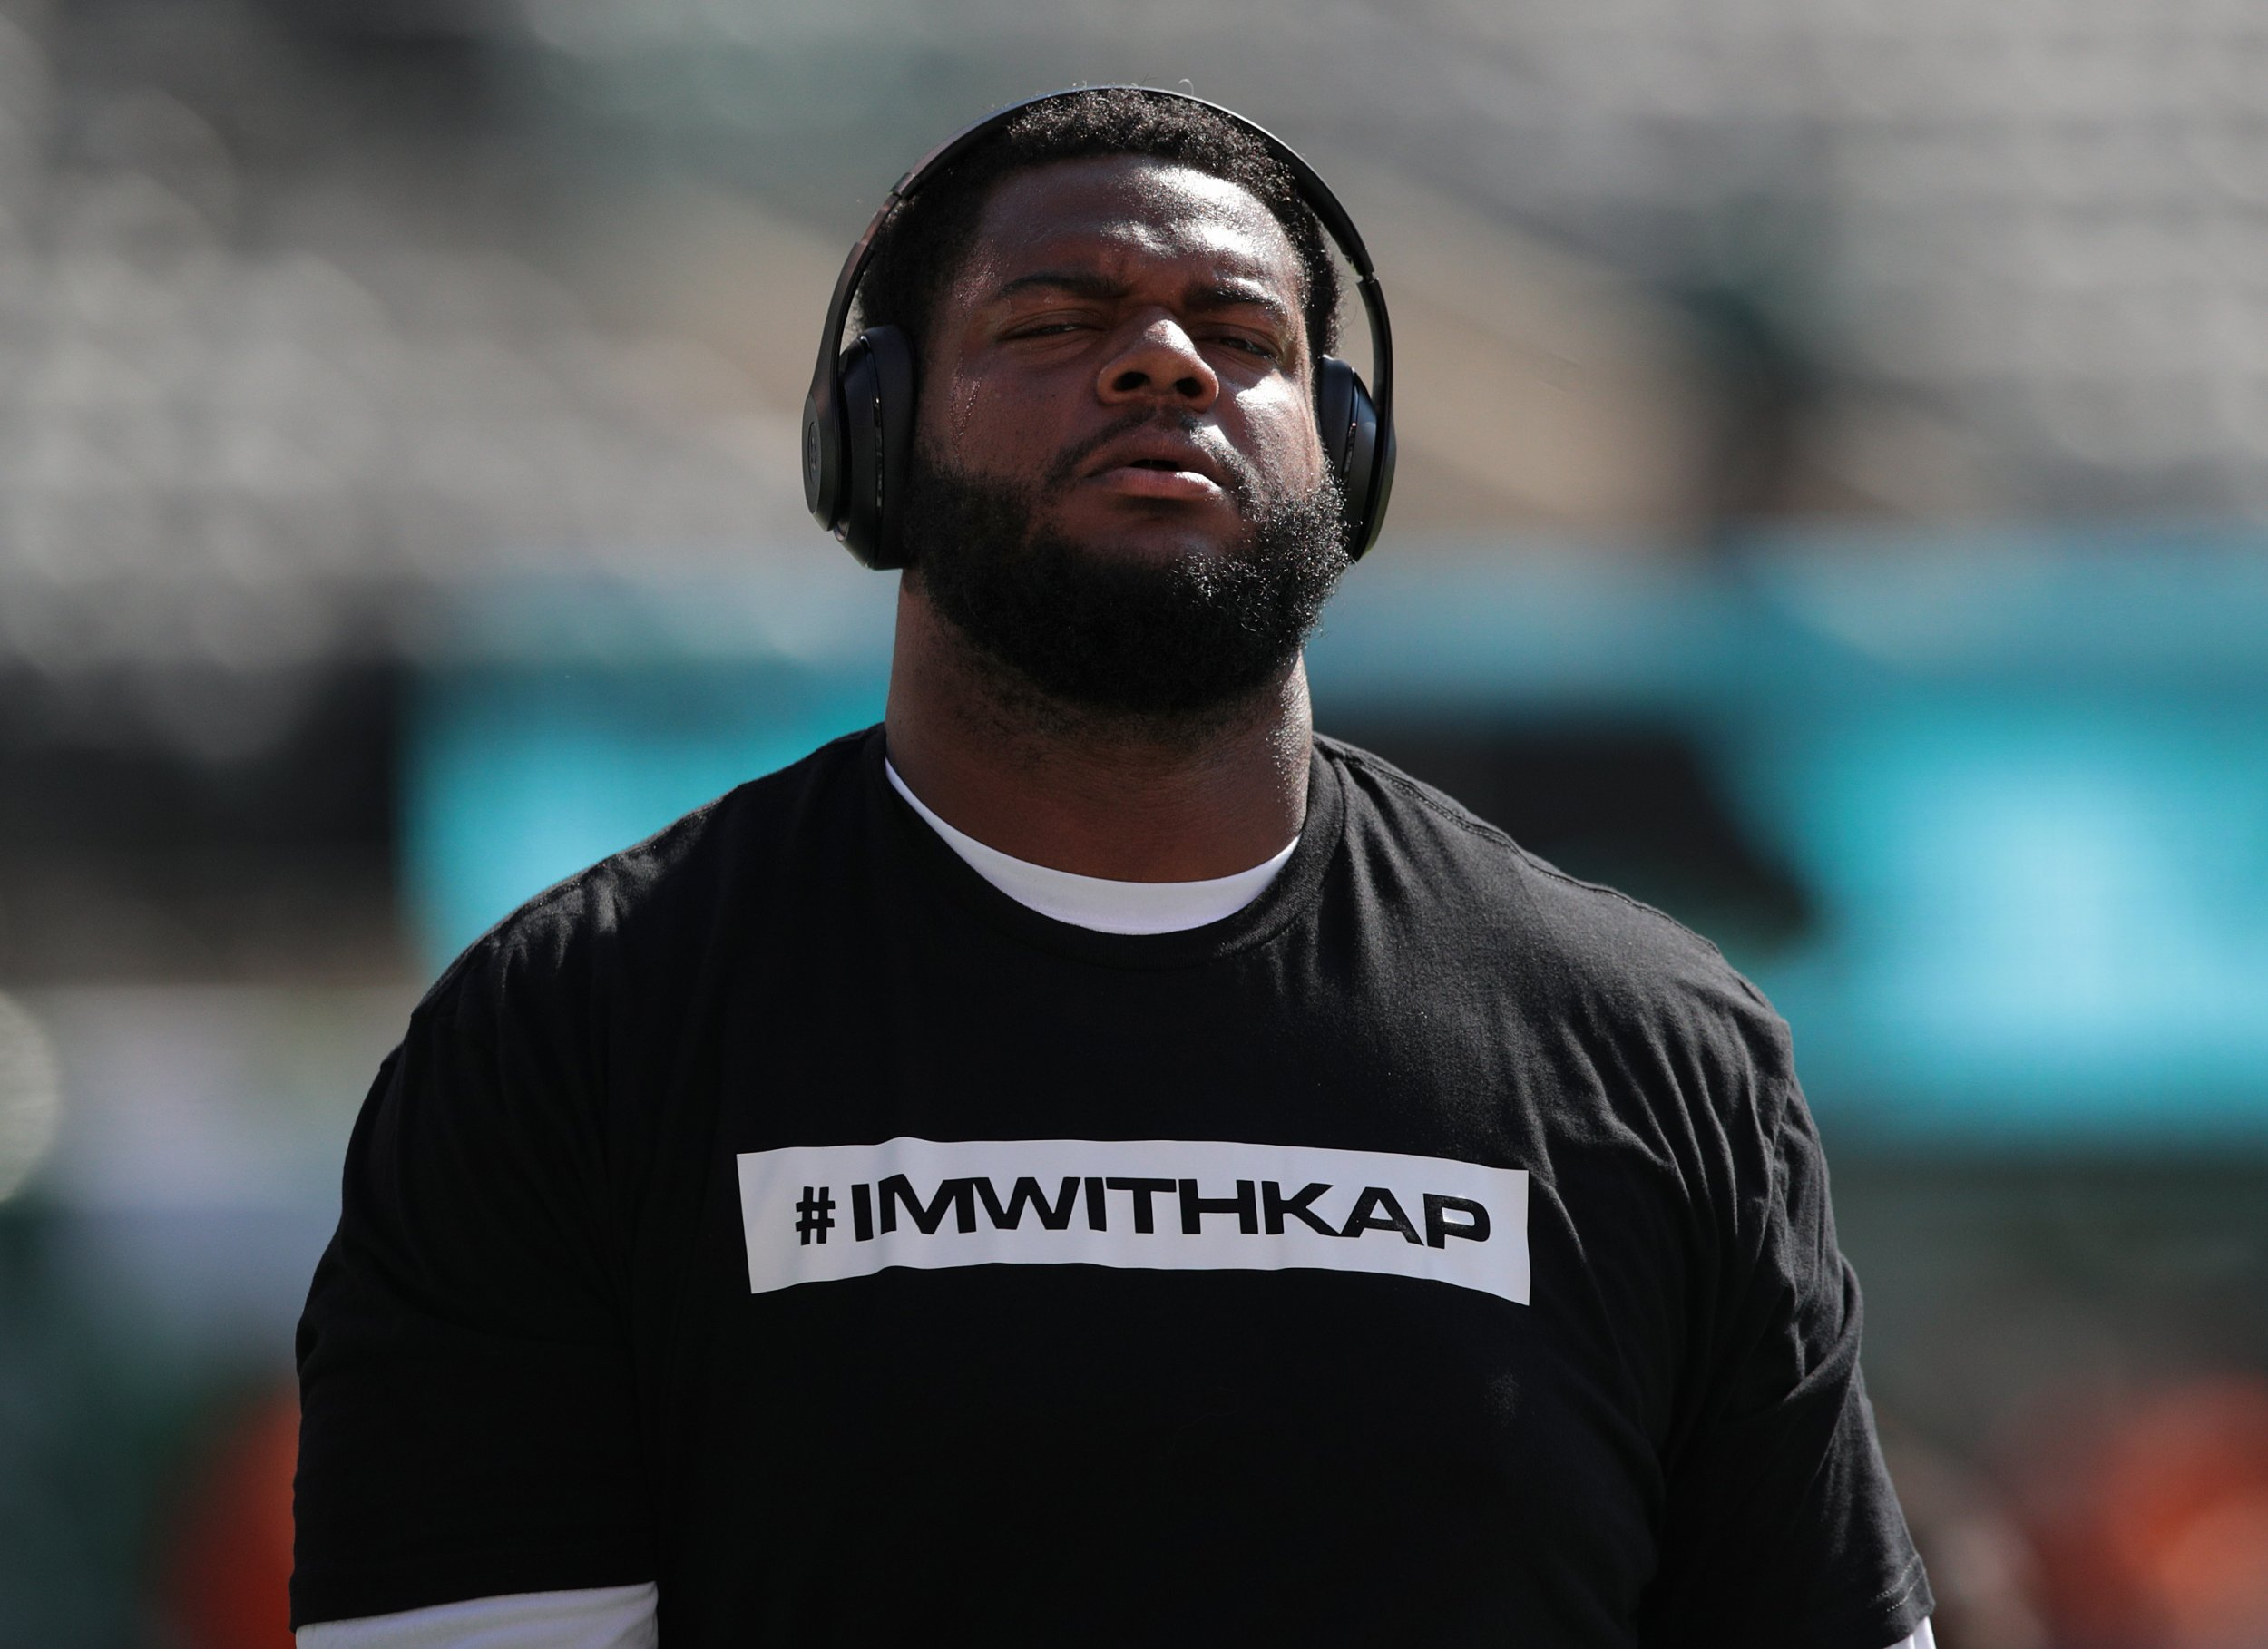 Jordan Phillips of the Miami Dolphins wears a t-shirt in support of former NFL quarterback Colin Kaepernick in East Rutherford, New Jersey, September 24.